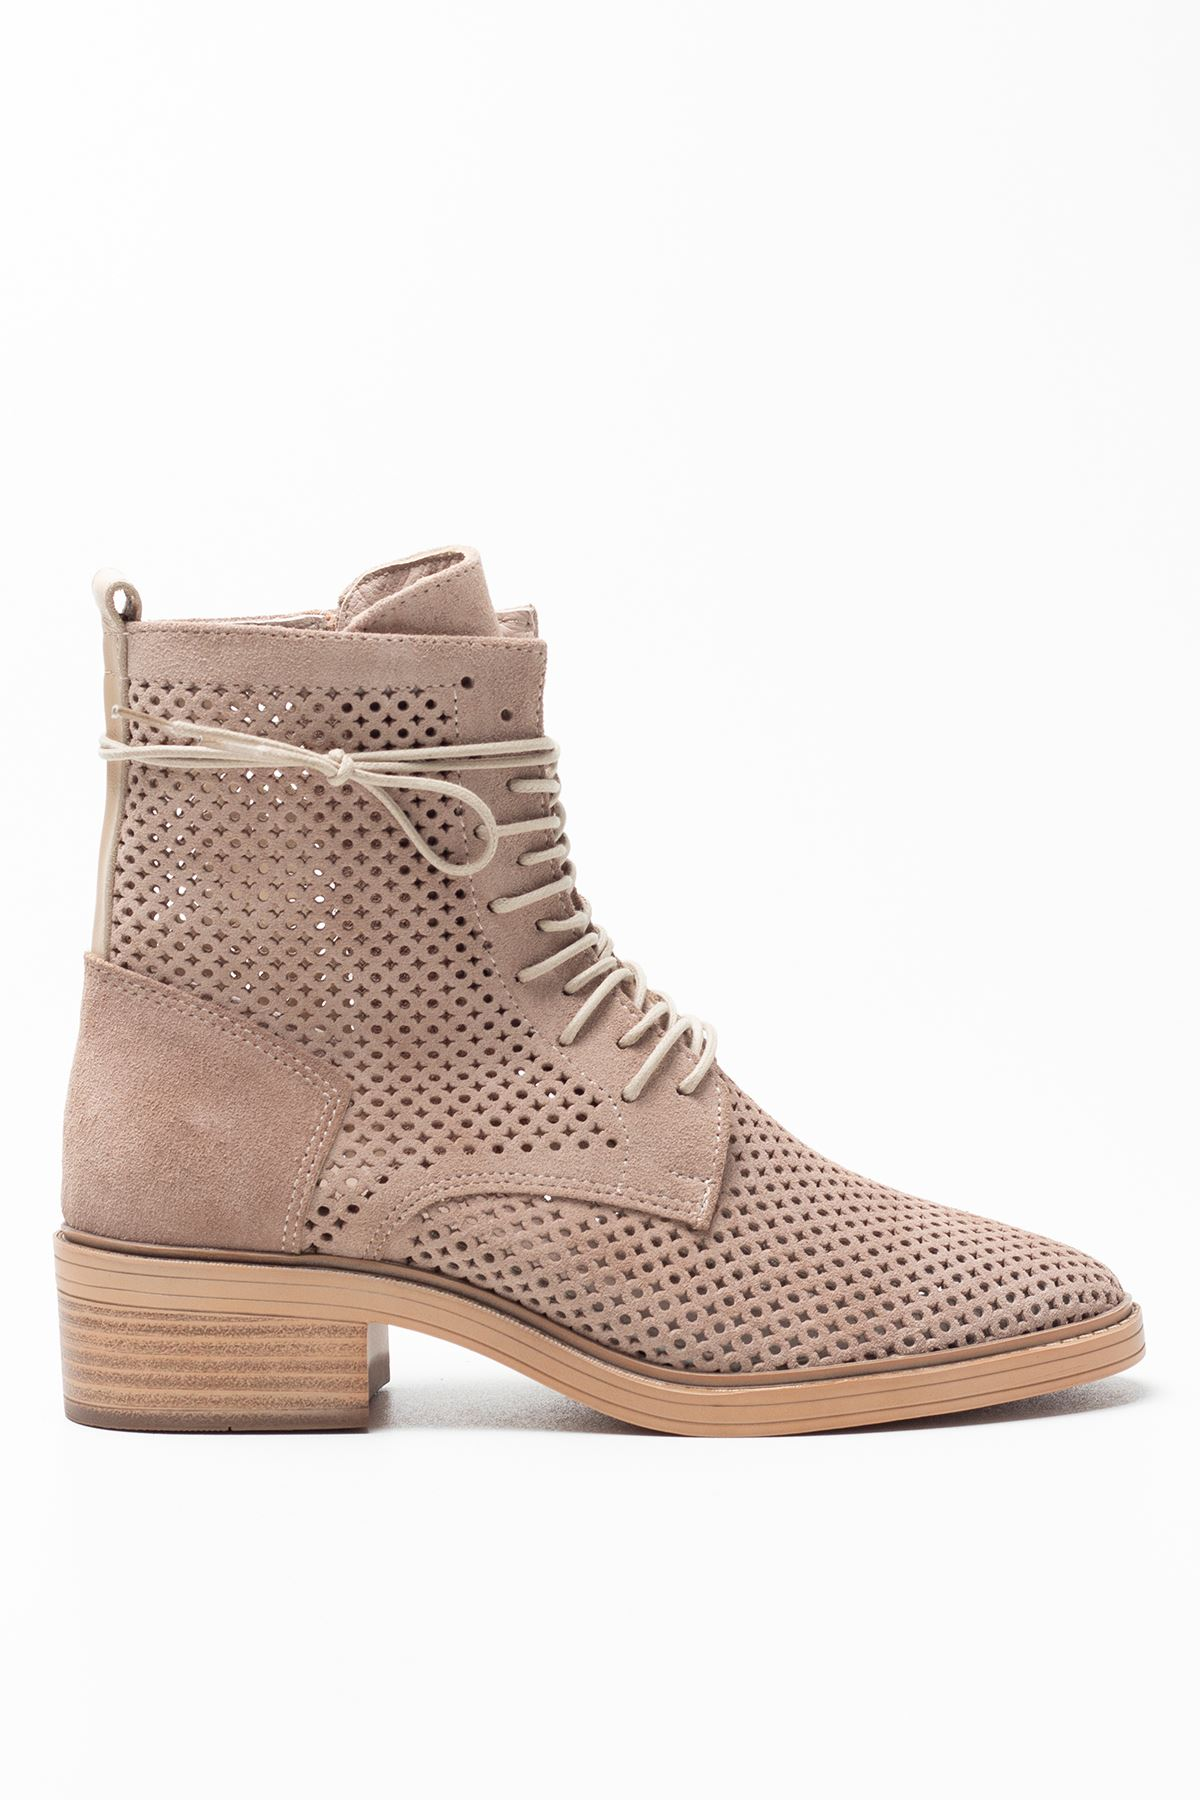 Becca Beige Genuine Leather Women's Summer Boots